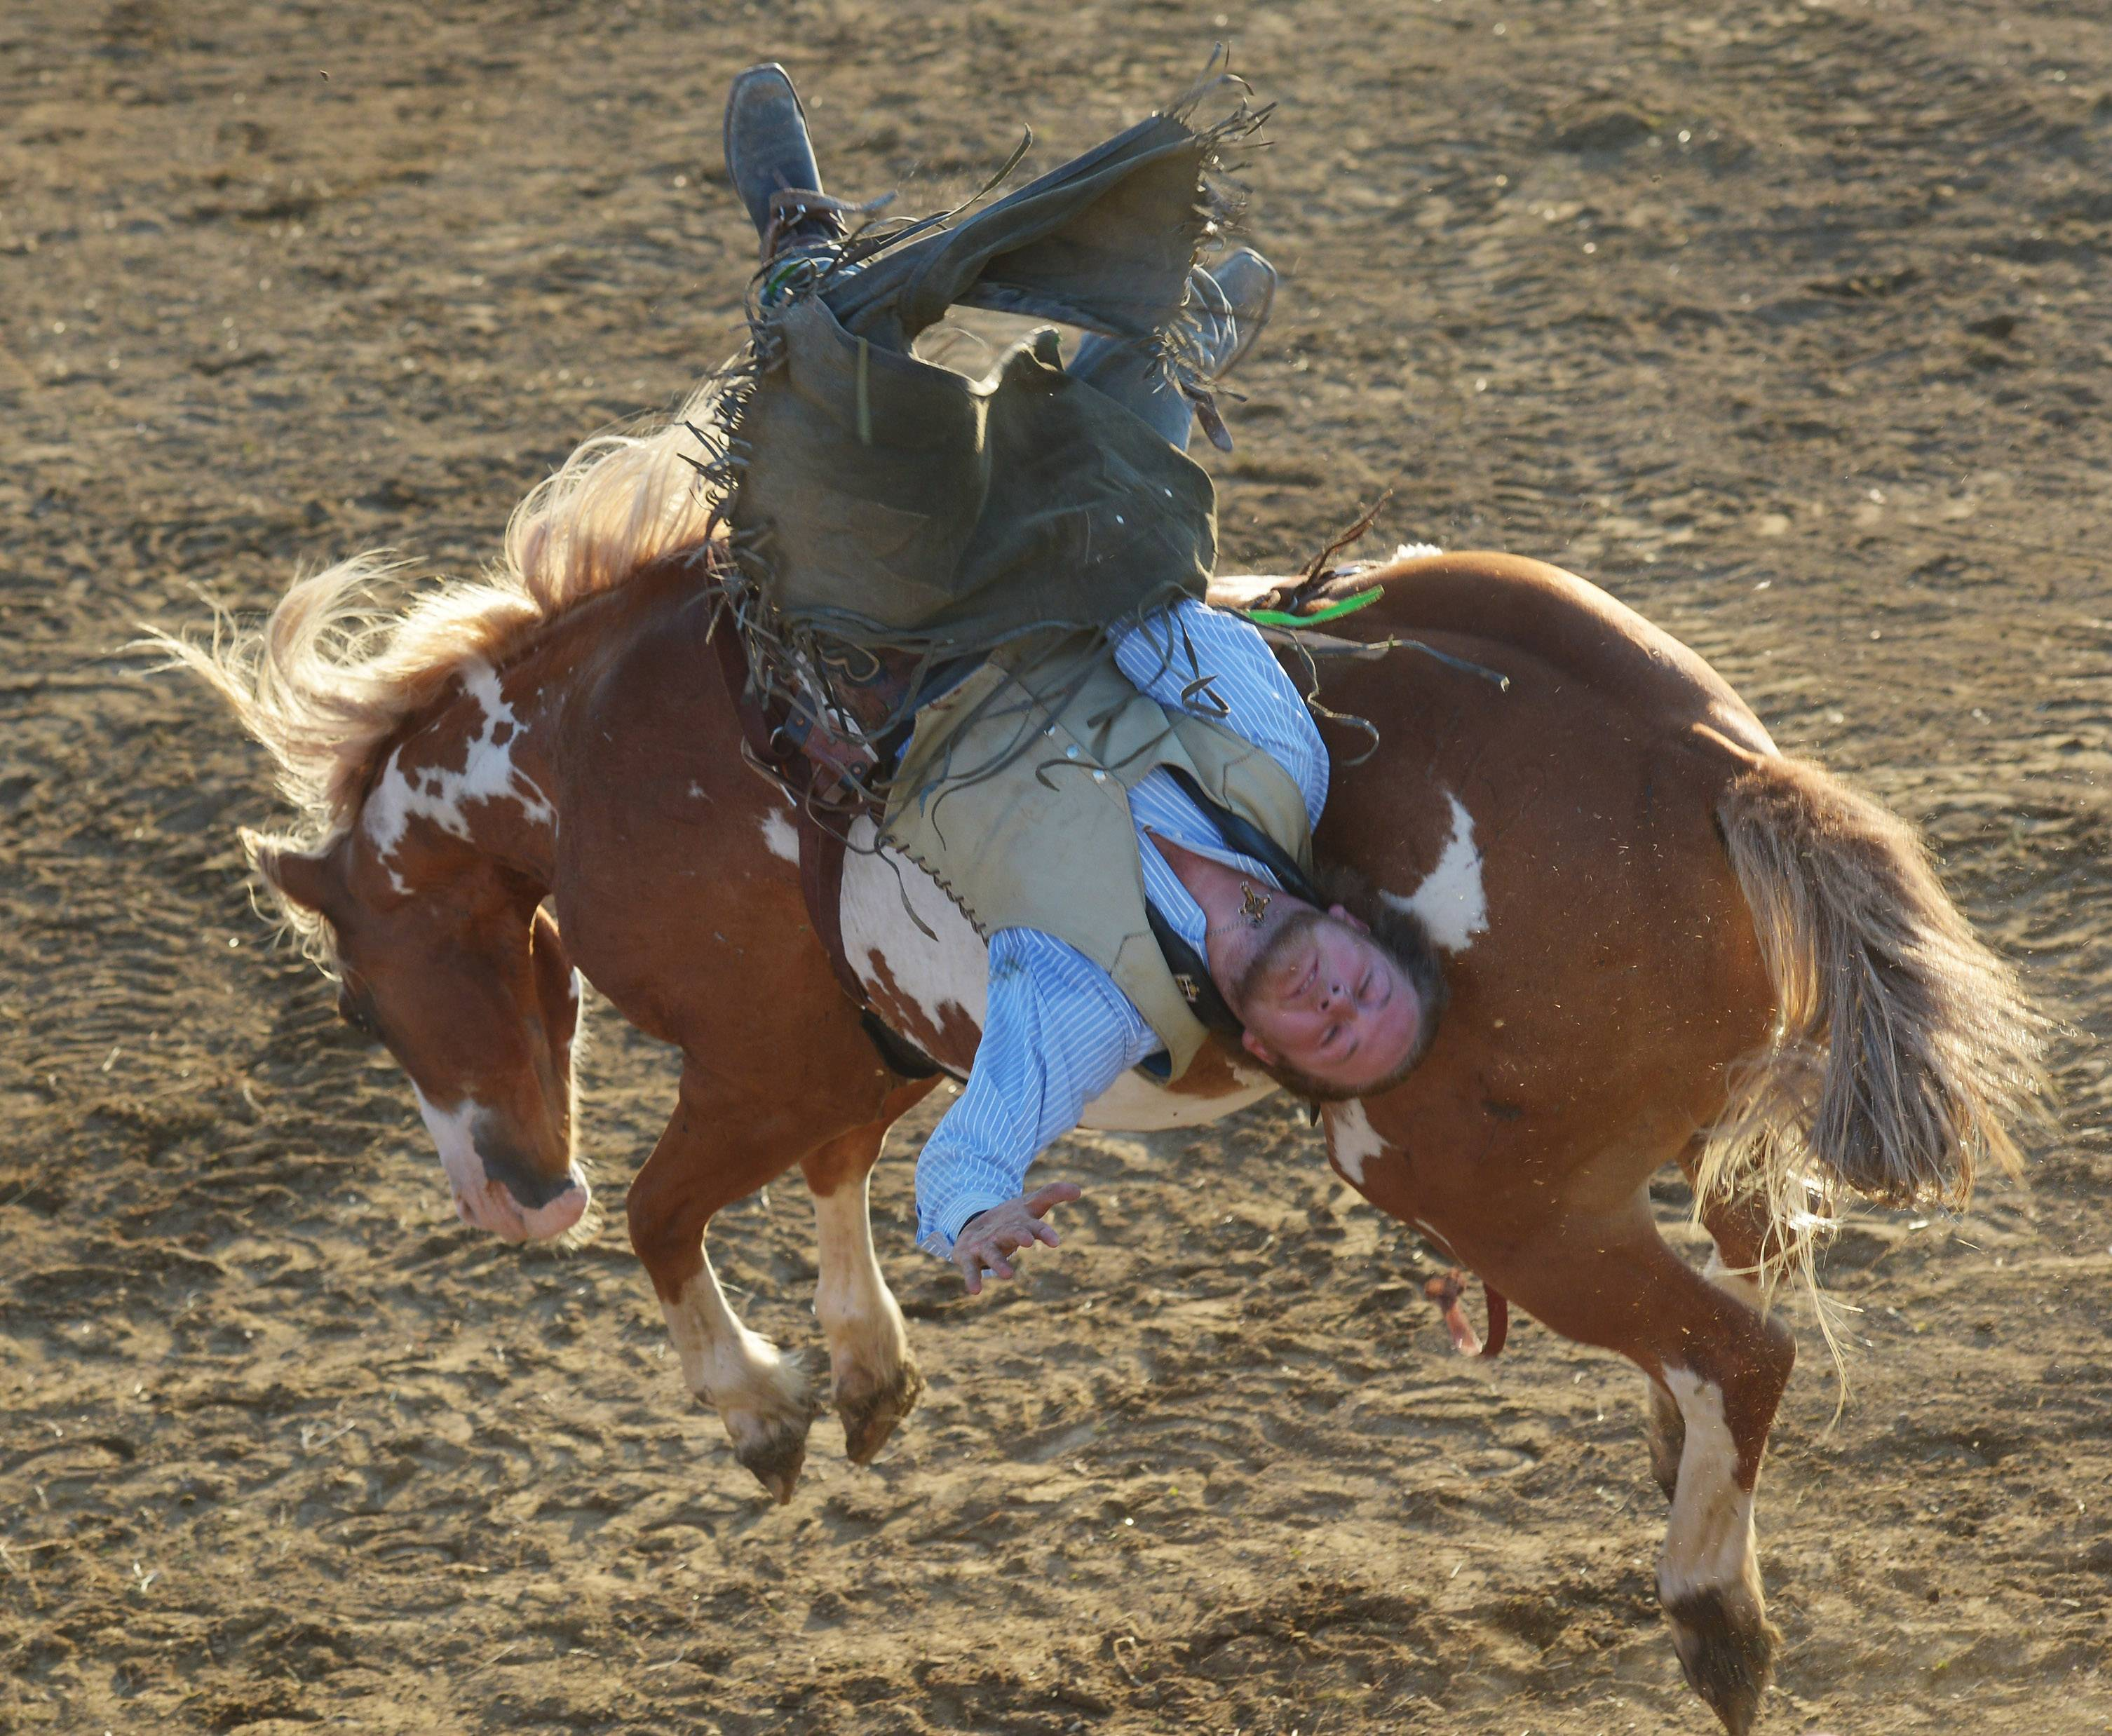 Events planned for the IPRA Championship Rodeo in Wauconda include bronco riding, bull riding, roping, barrel racing and more.